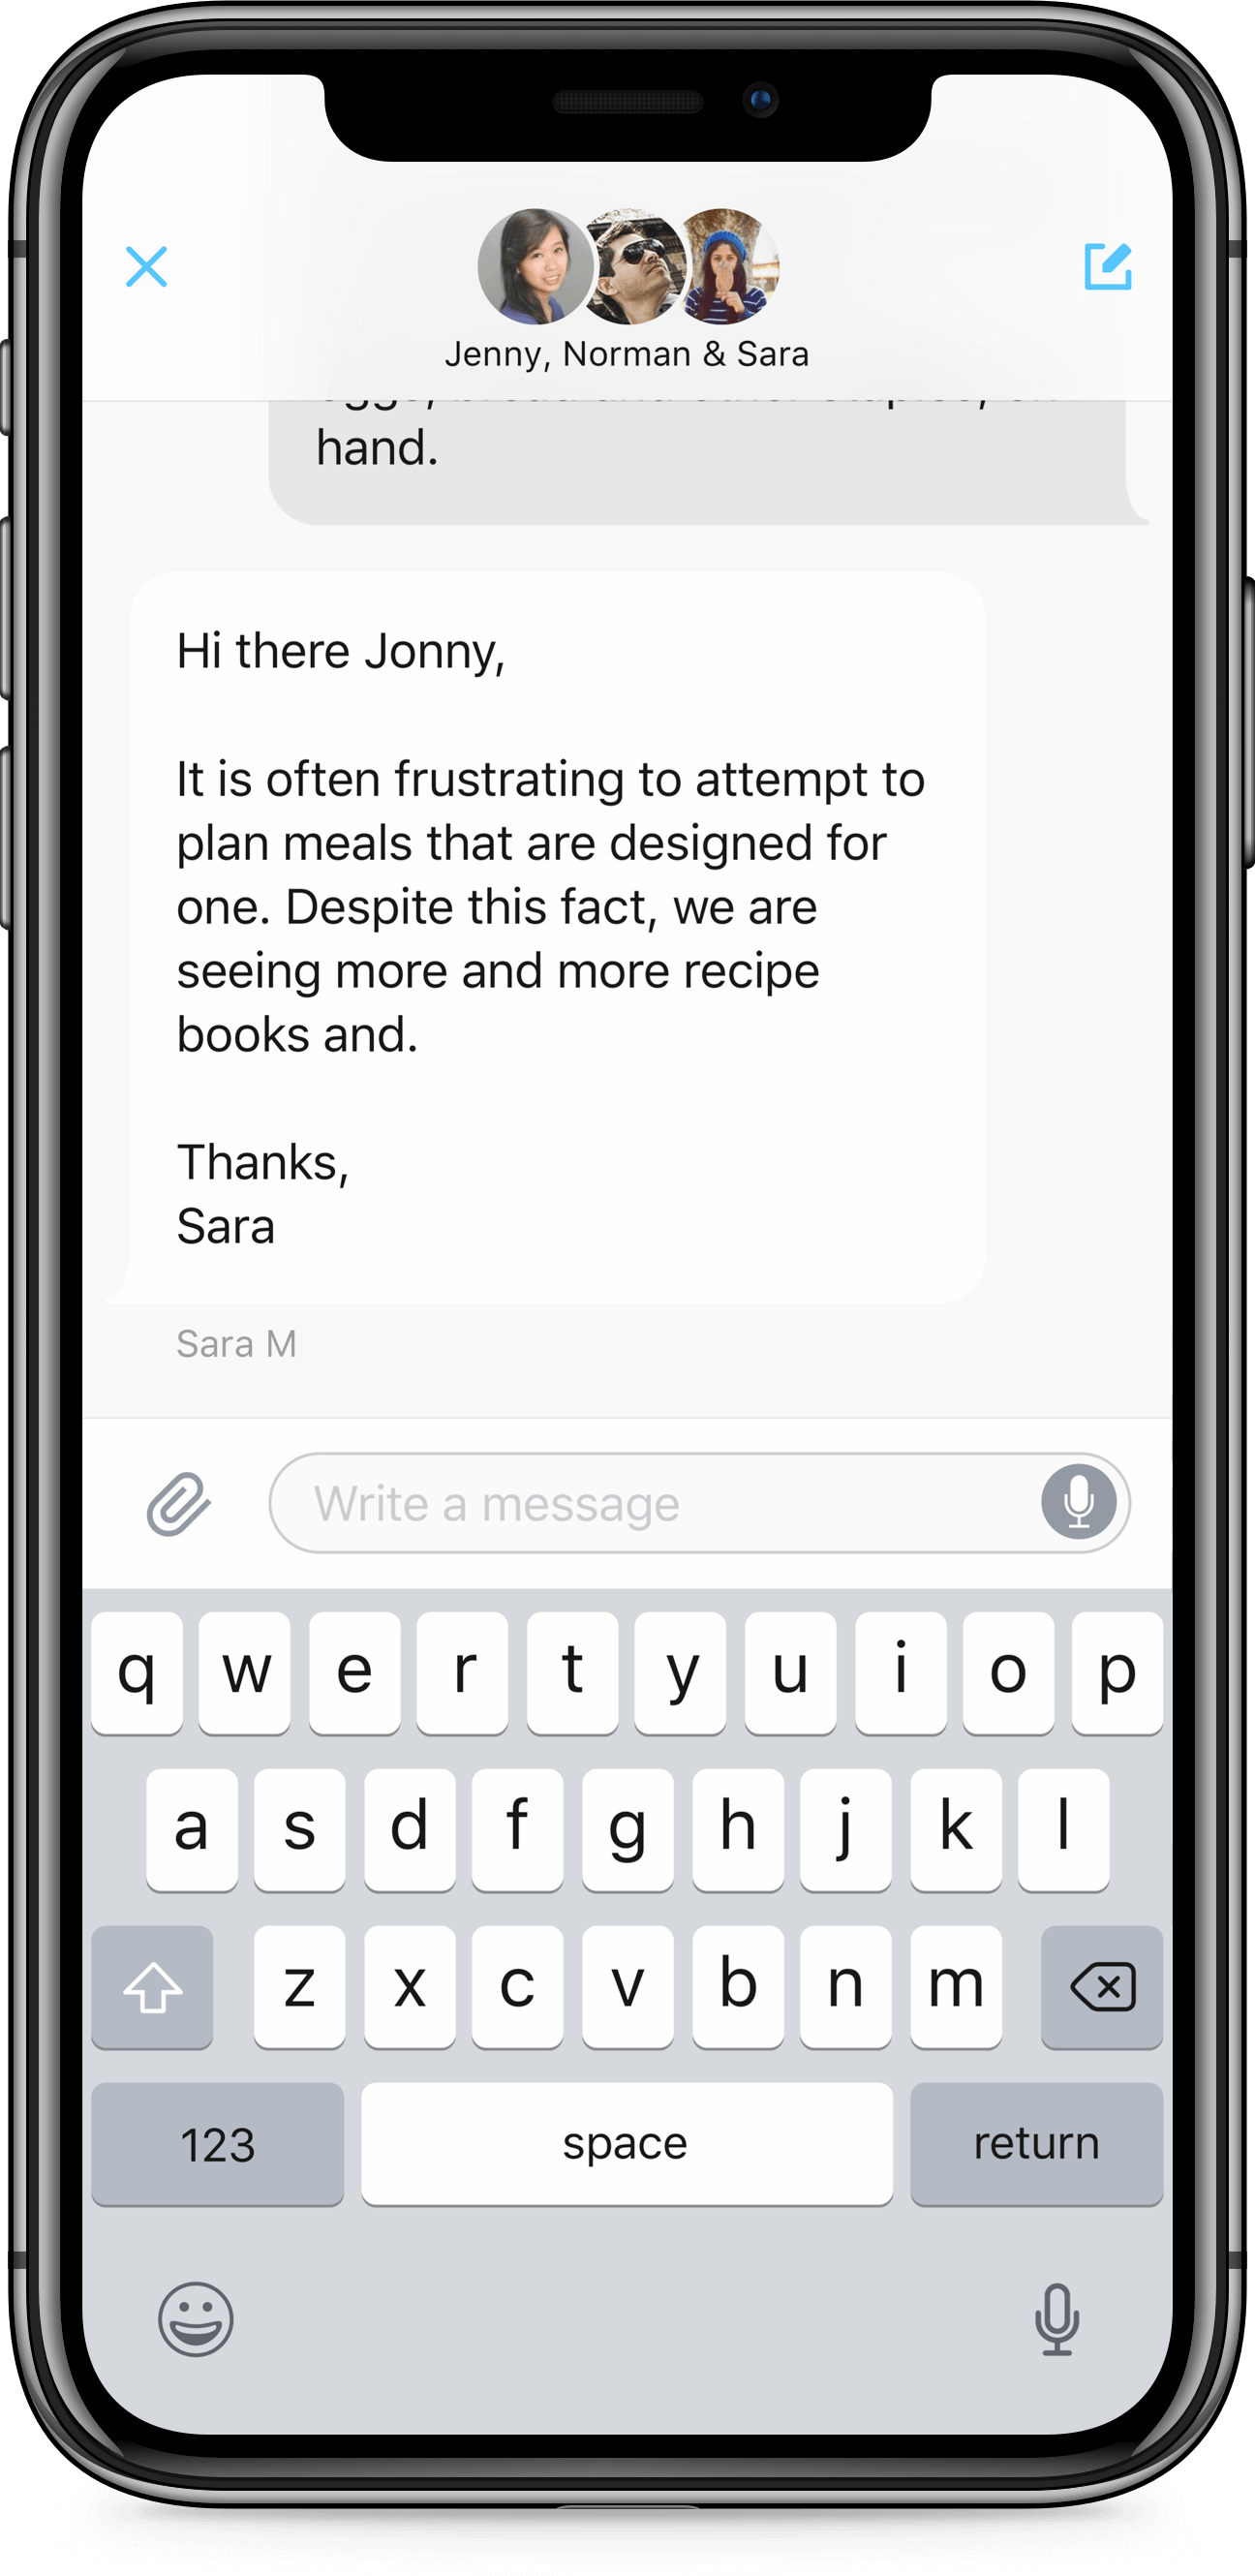 iPhone X screen of Zendesk SDK conversation